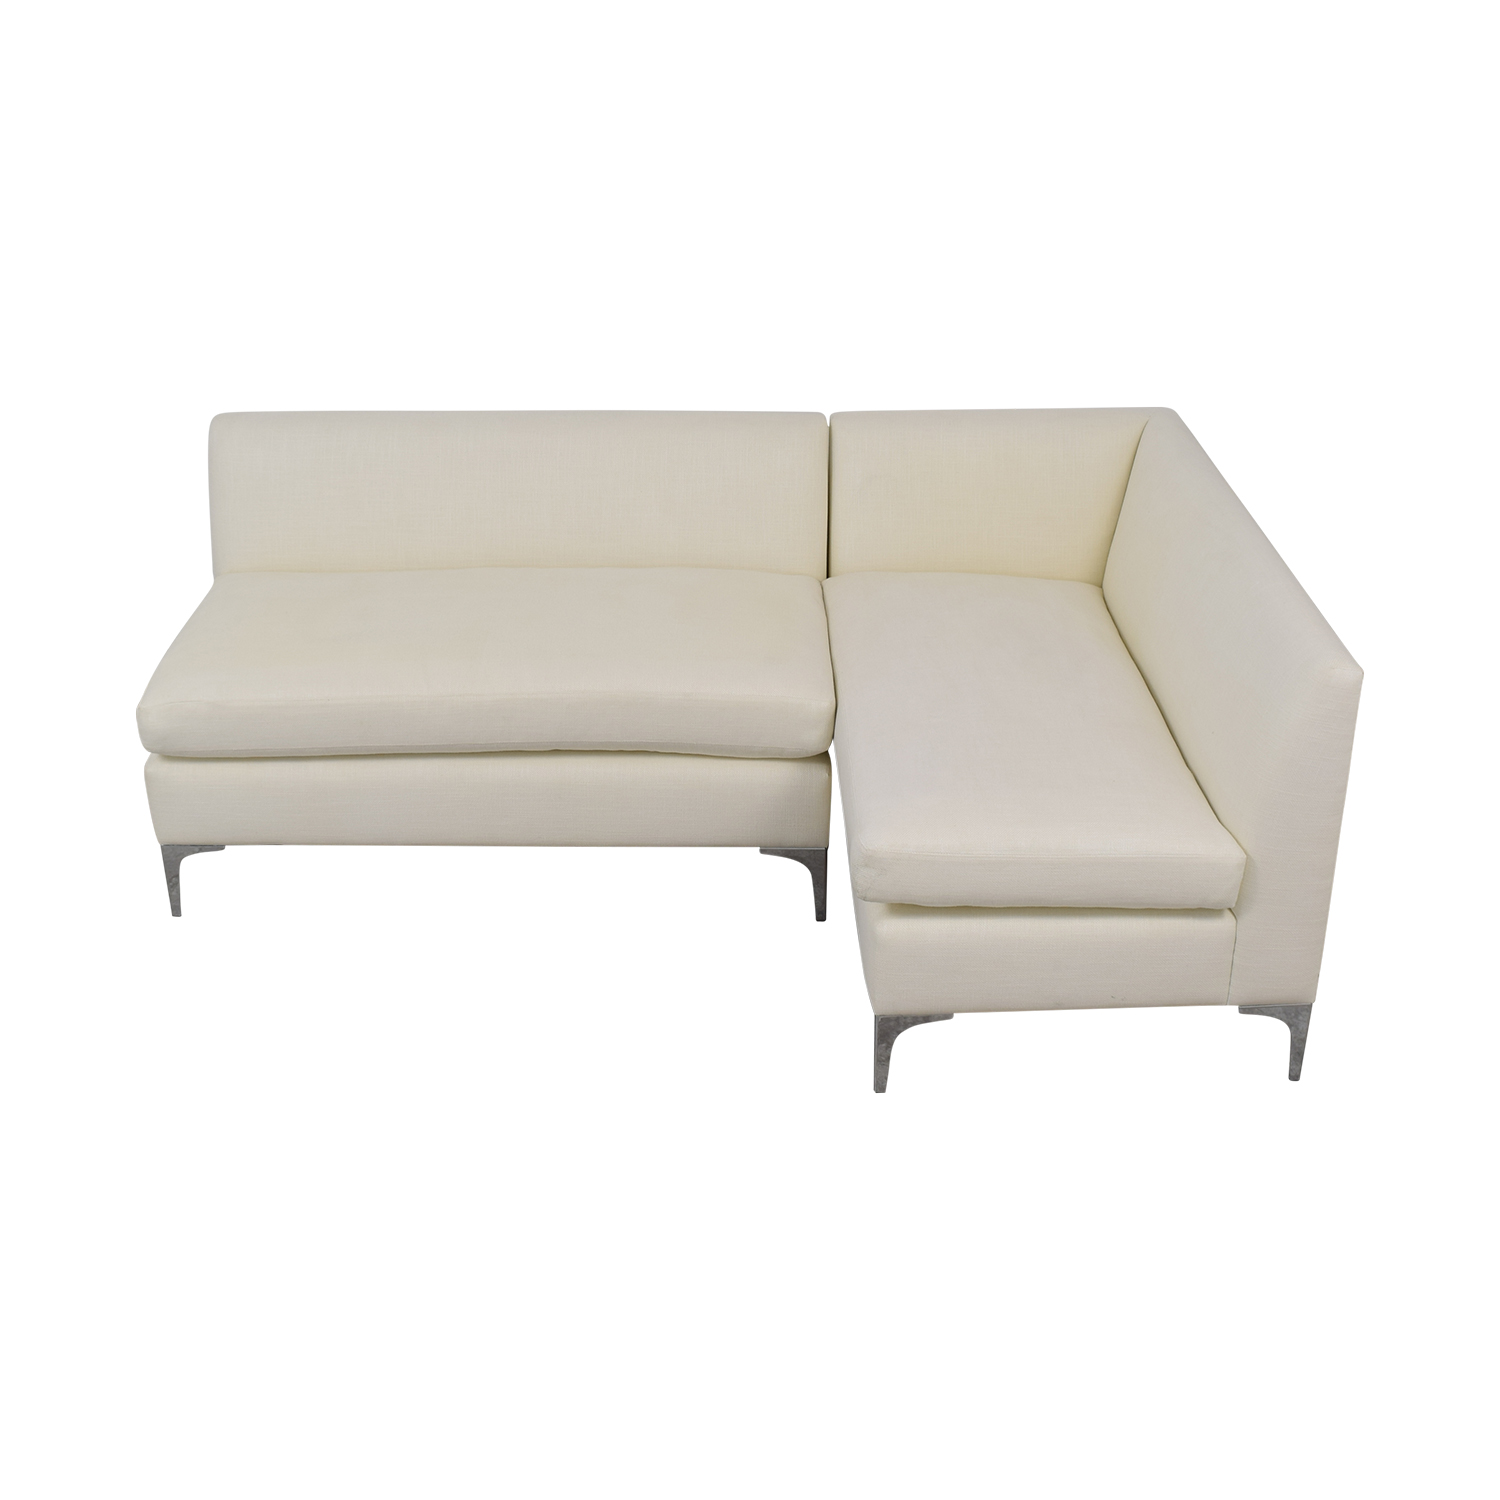 Paoli Paoli Custom Two-Piece Banquette